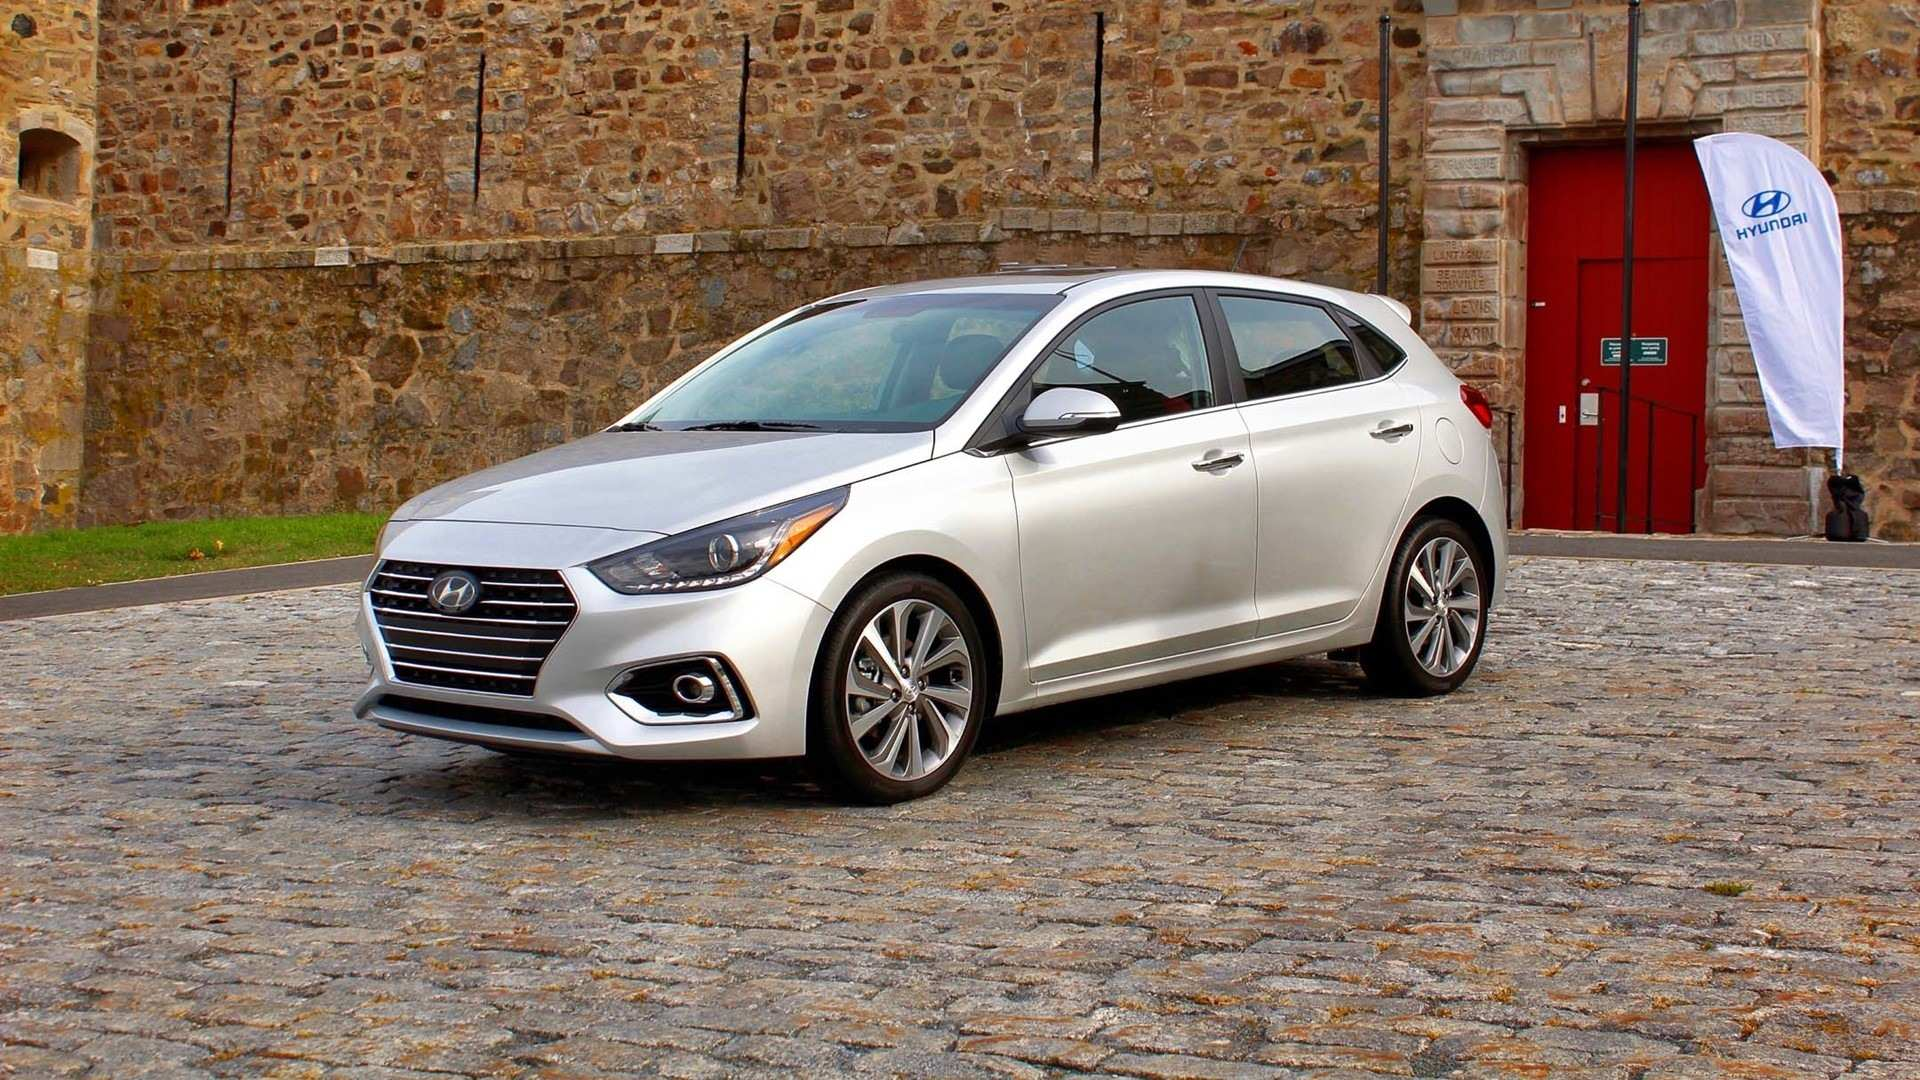 68 Gallery of 2019 Hyundai Accent Hatchback Picture by 2019 Hyundai Accent Hatchback